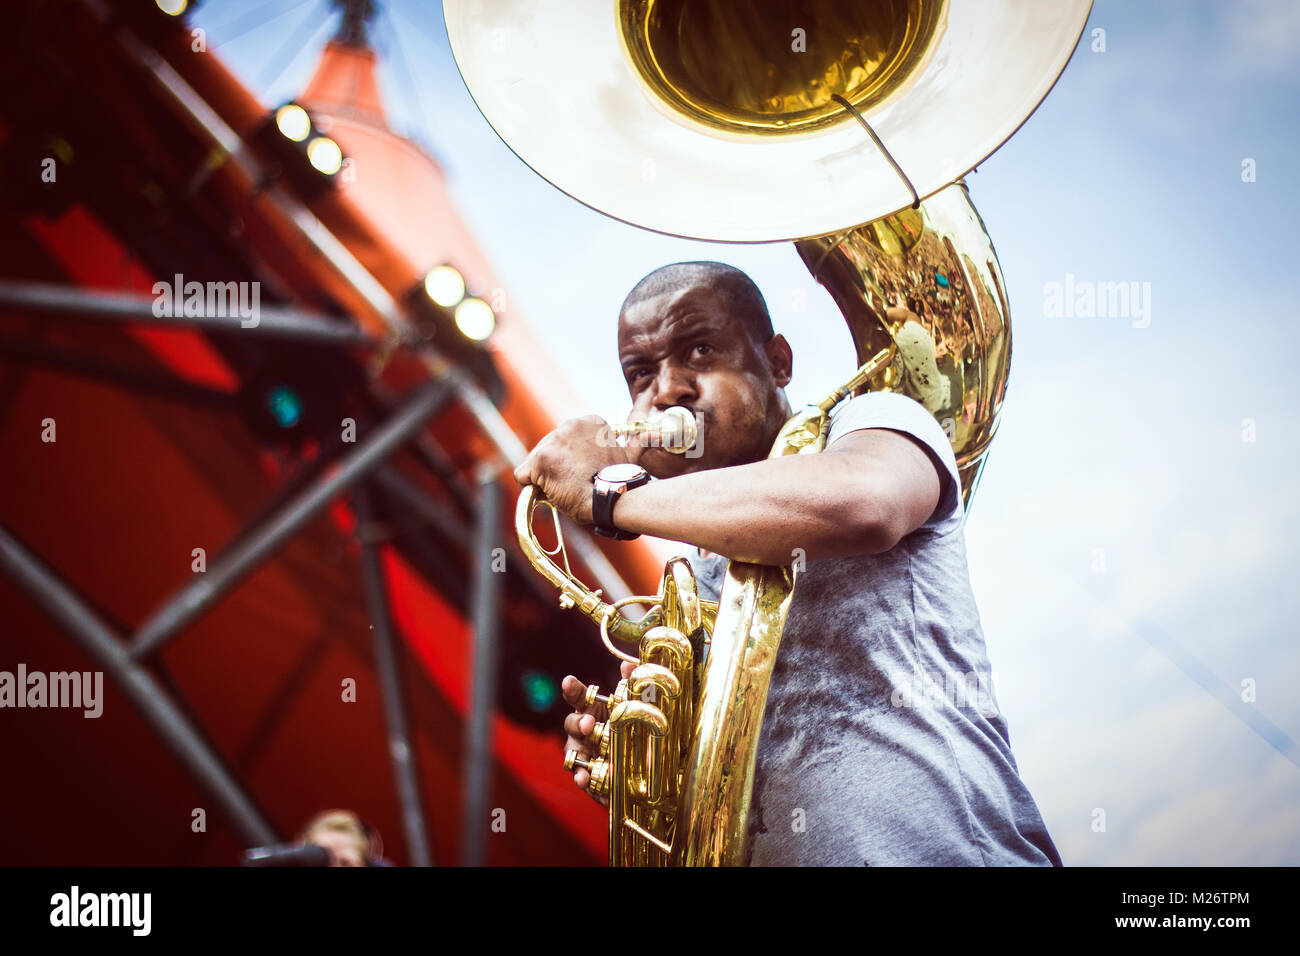 """Sousaphonist Damon """"Tuba Gooding Jr."""" from the American hip-hop band The Roots is here pictured live at the Danish Stock Photo"""